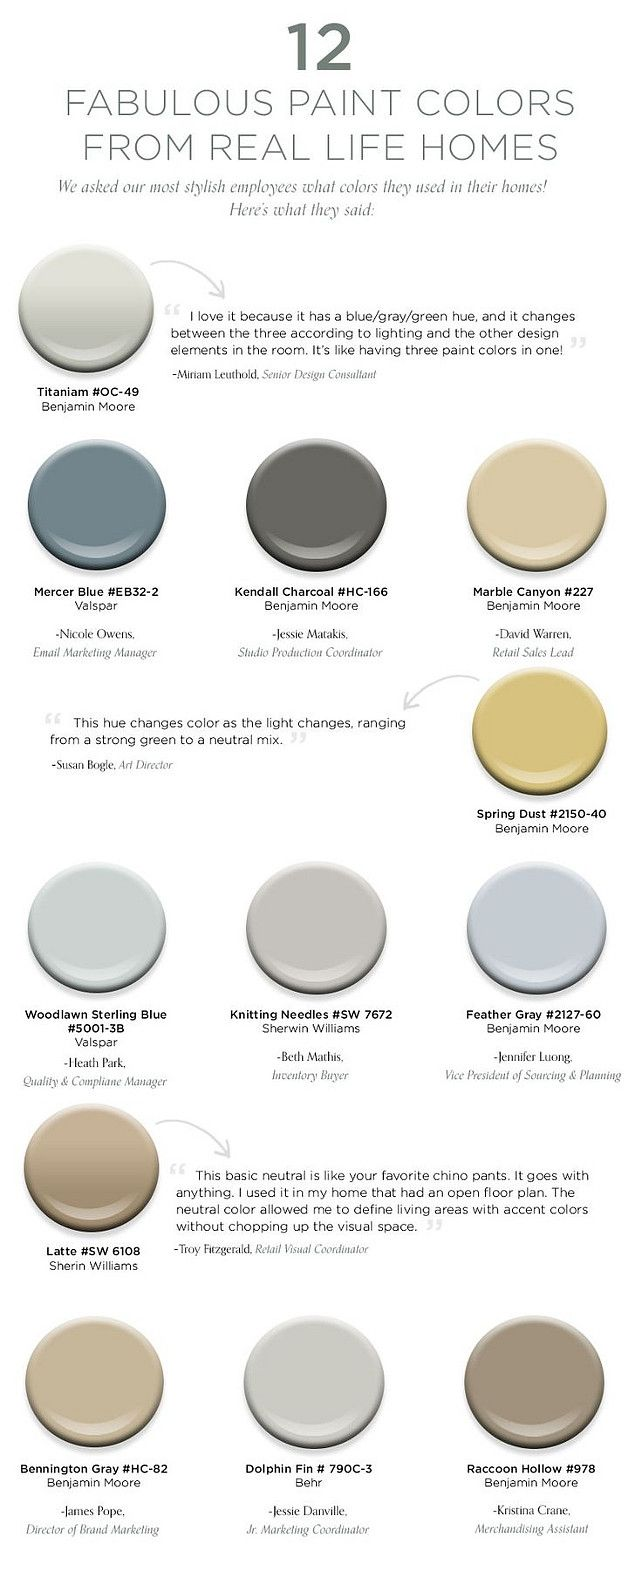 Interior paint color and palette ideas accent wall colors for home also rh pinterest